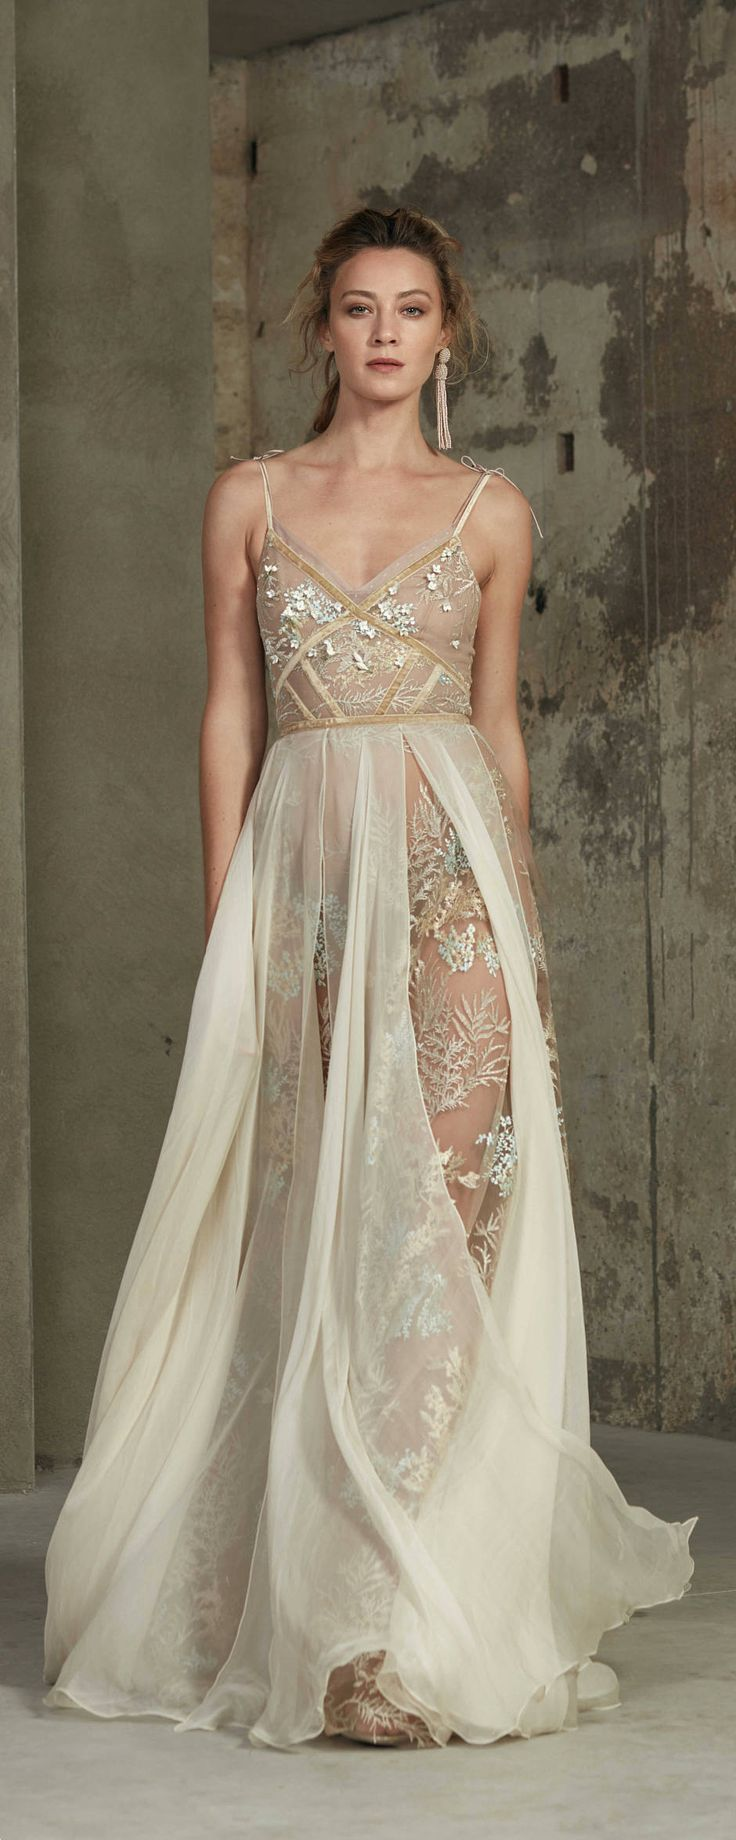 The 25 best beige wedding dress ideas on pinterest blush wedding dress kalina color wedding dress beige wedding dress bridal dress junglespirit Image collections